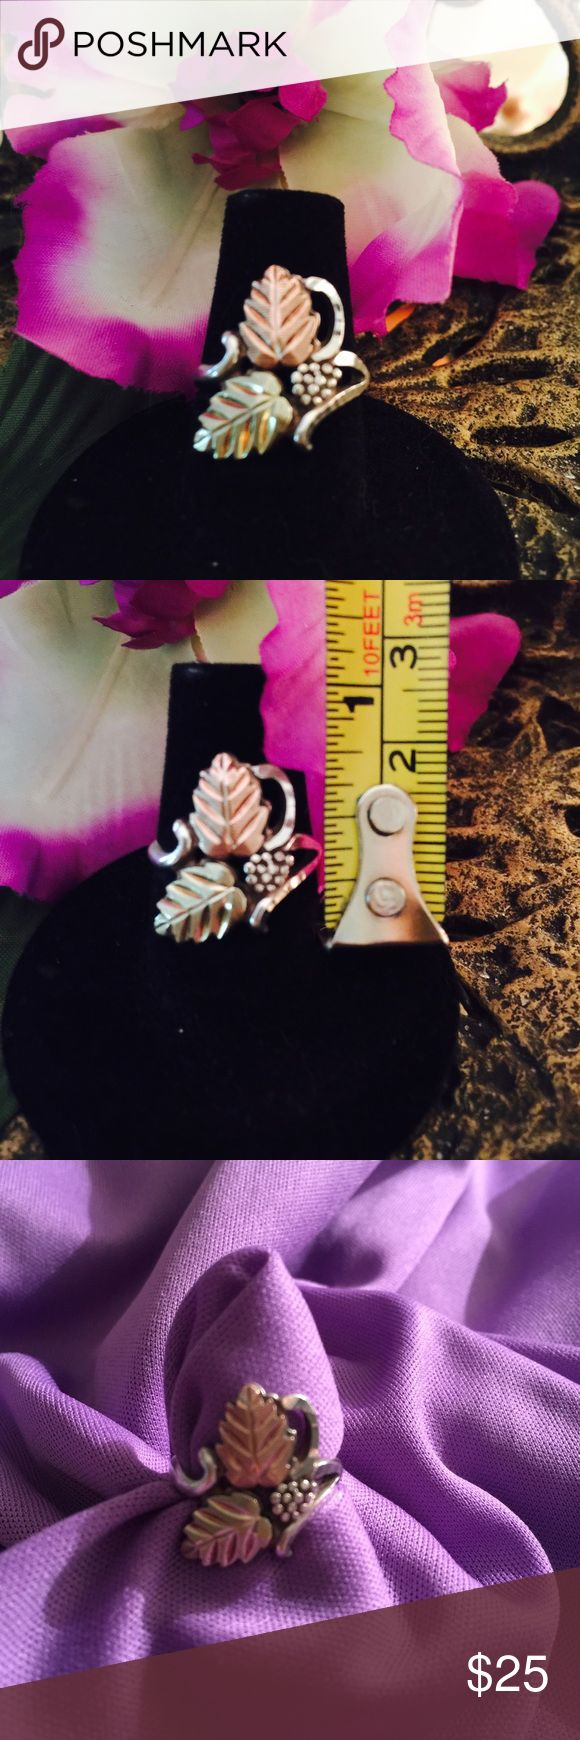 ✨Black Hills Gold✨ .925 Tri-Tone Leaf Ring Two leaves and grape cluster with diamond cutting.  Seldom worn.  One owner.  Sterling Silver.  EUC.  PRICE IS FIRM. Black Hills Gold Jewelry Rings